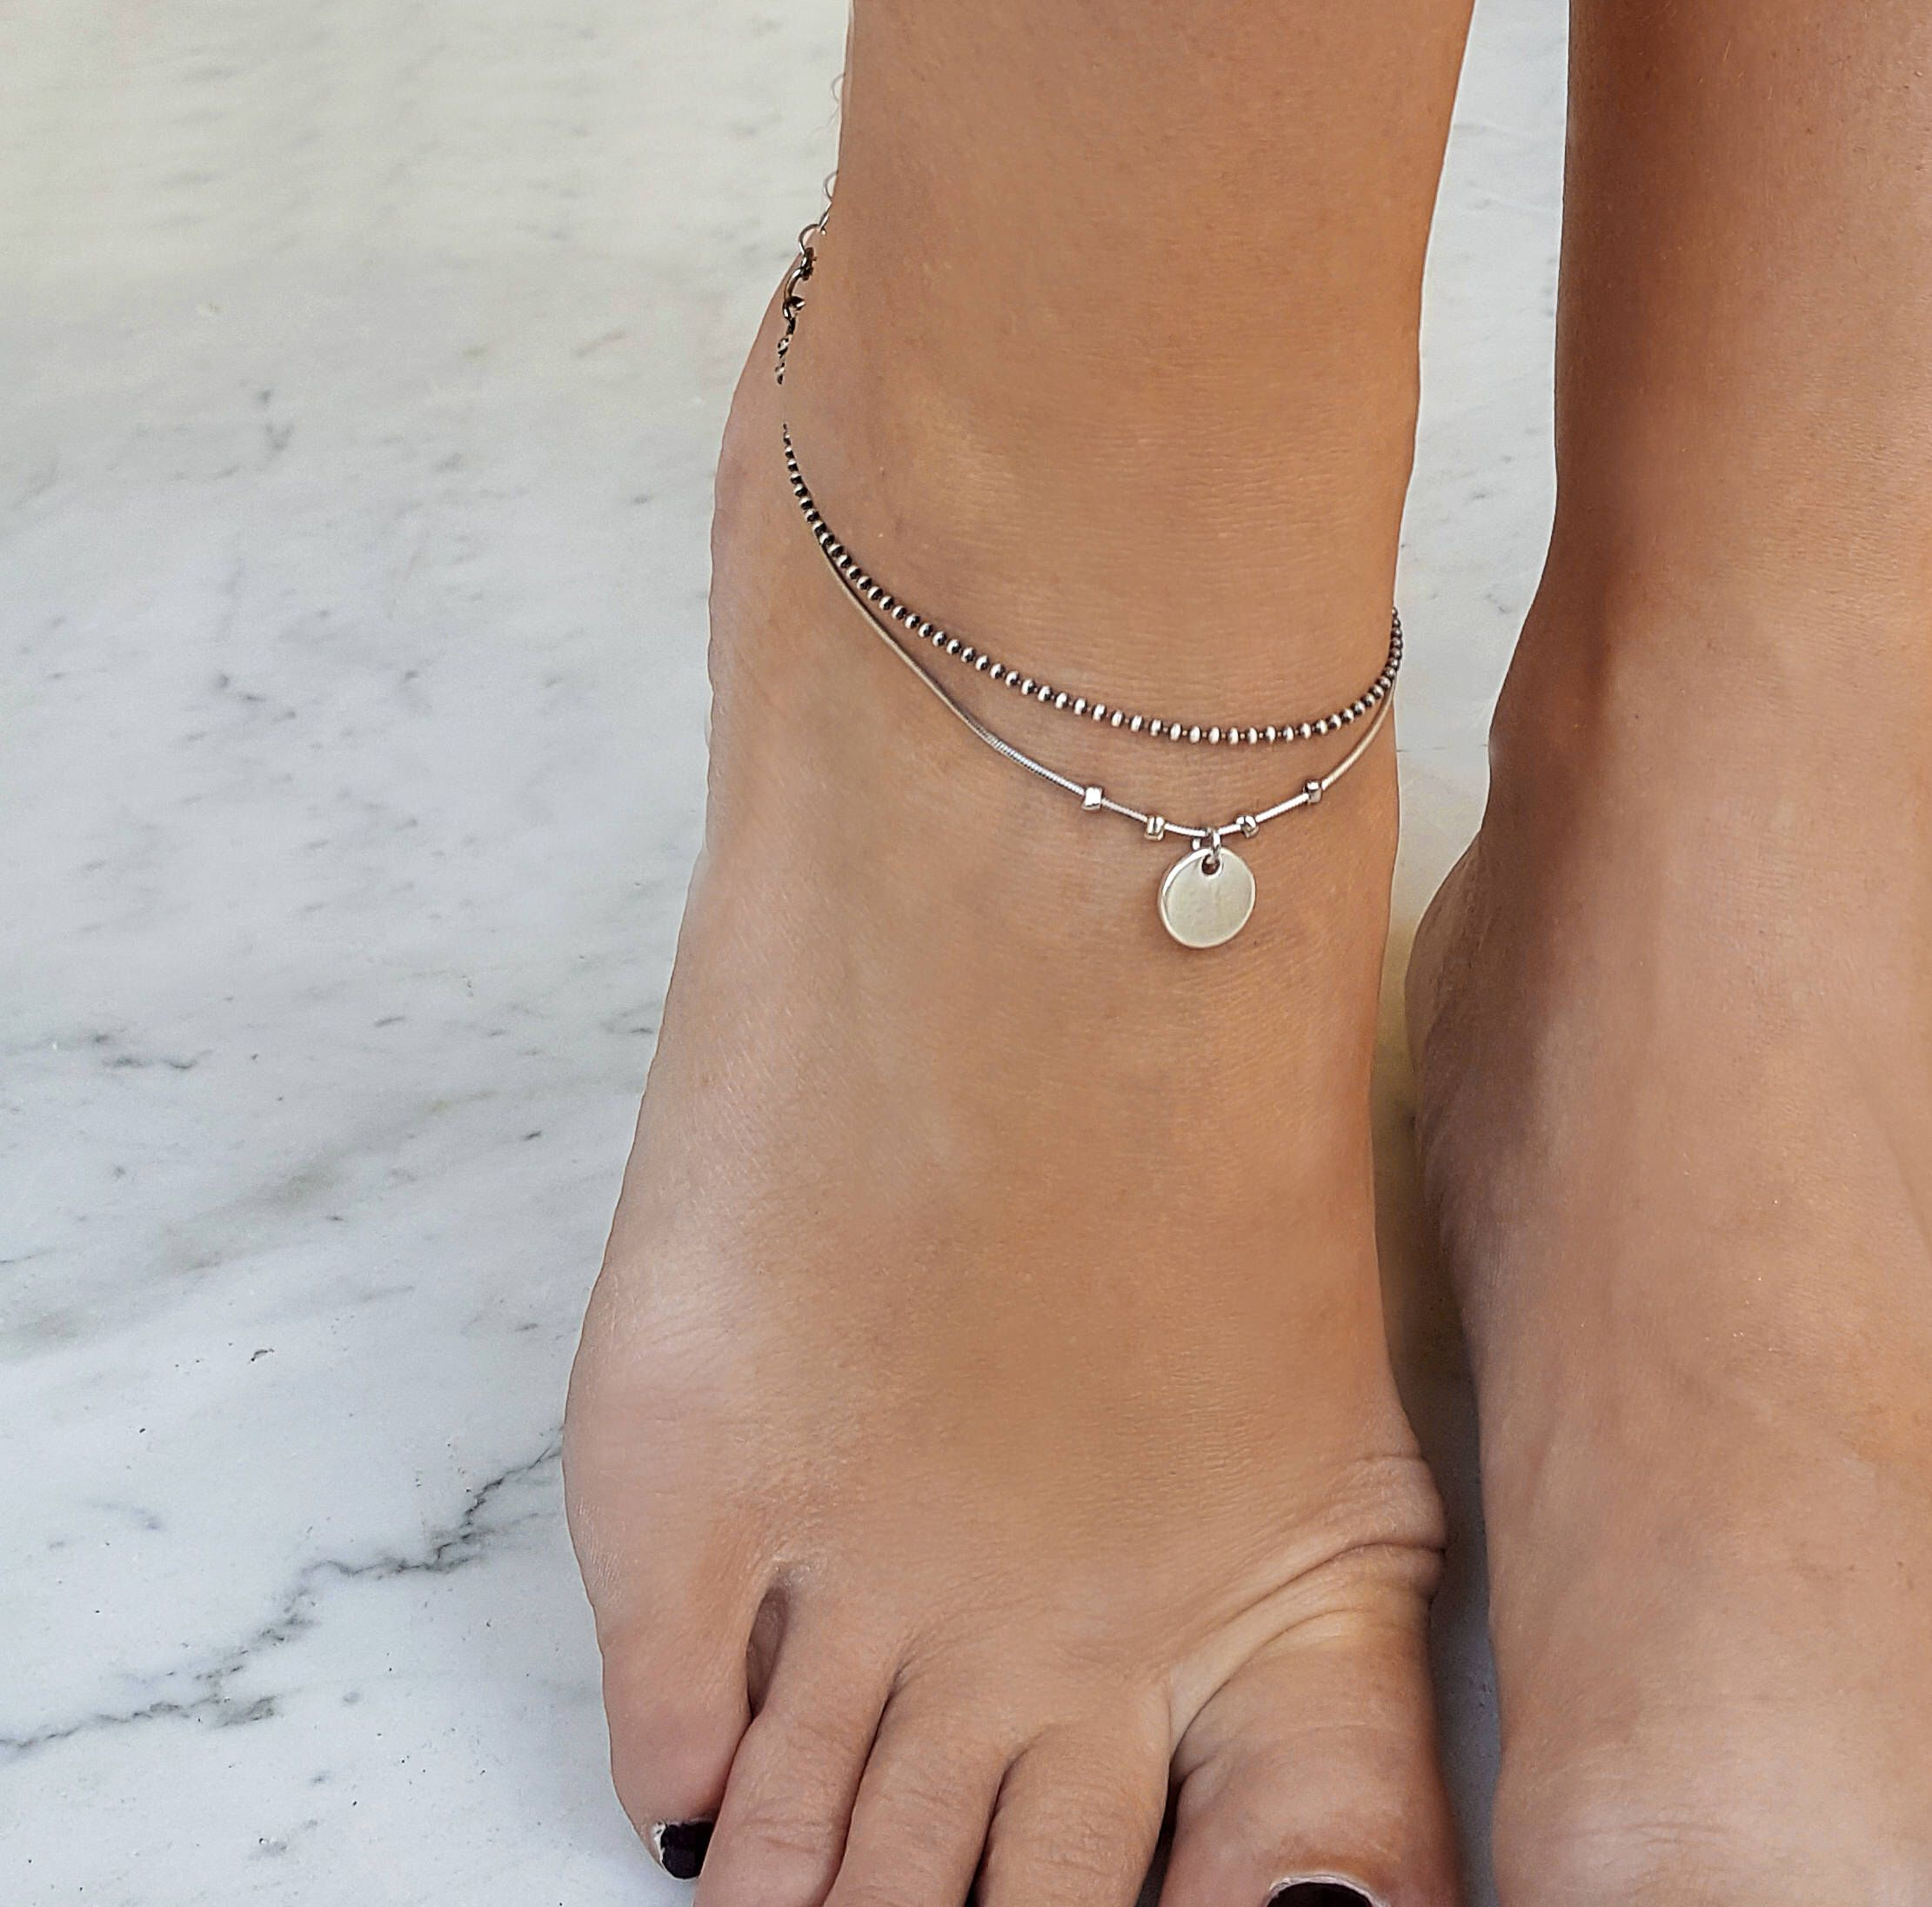 will trend you anklets reconsider ankle that bracelets and anklet simple the make pin choker chic